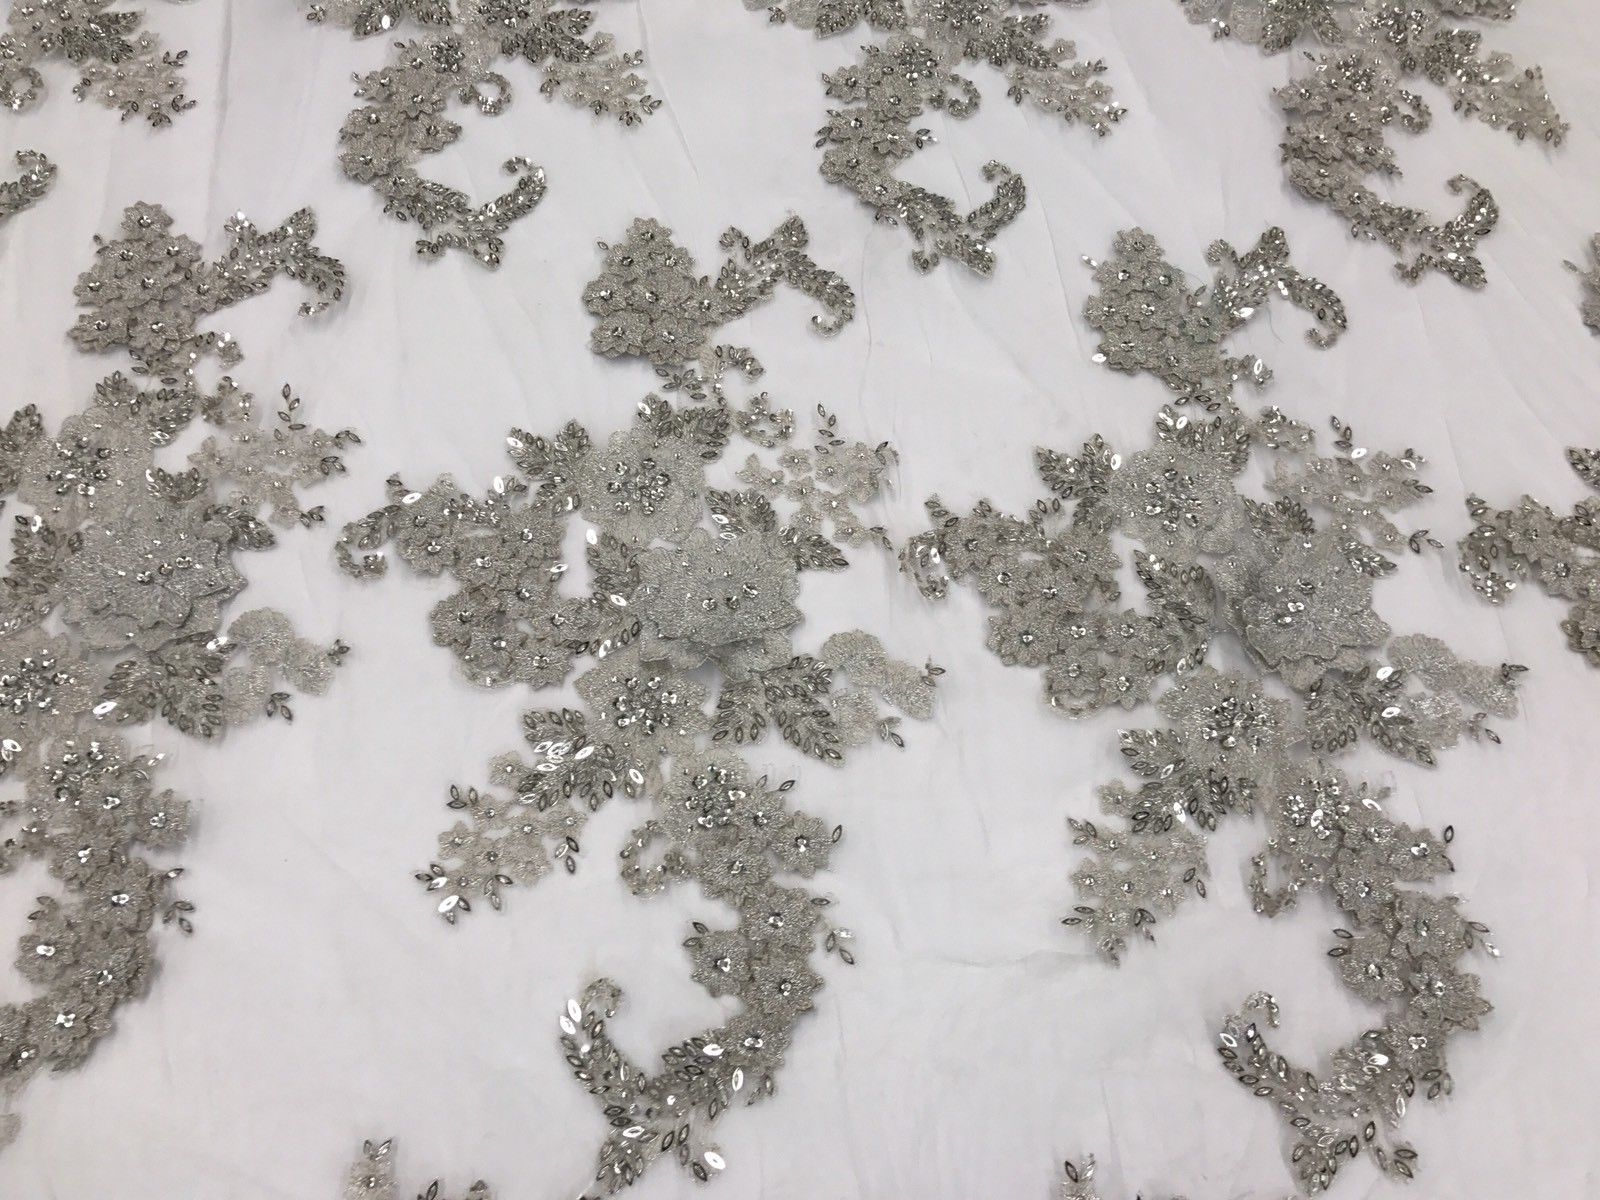 Lace Fabric - 3D Flower Beaded With Precious Crystal Sequins Silver By The Yard - KINGDOM OF FABRICS